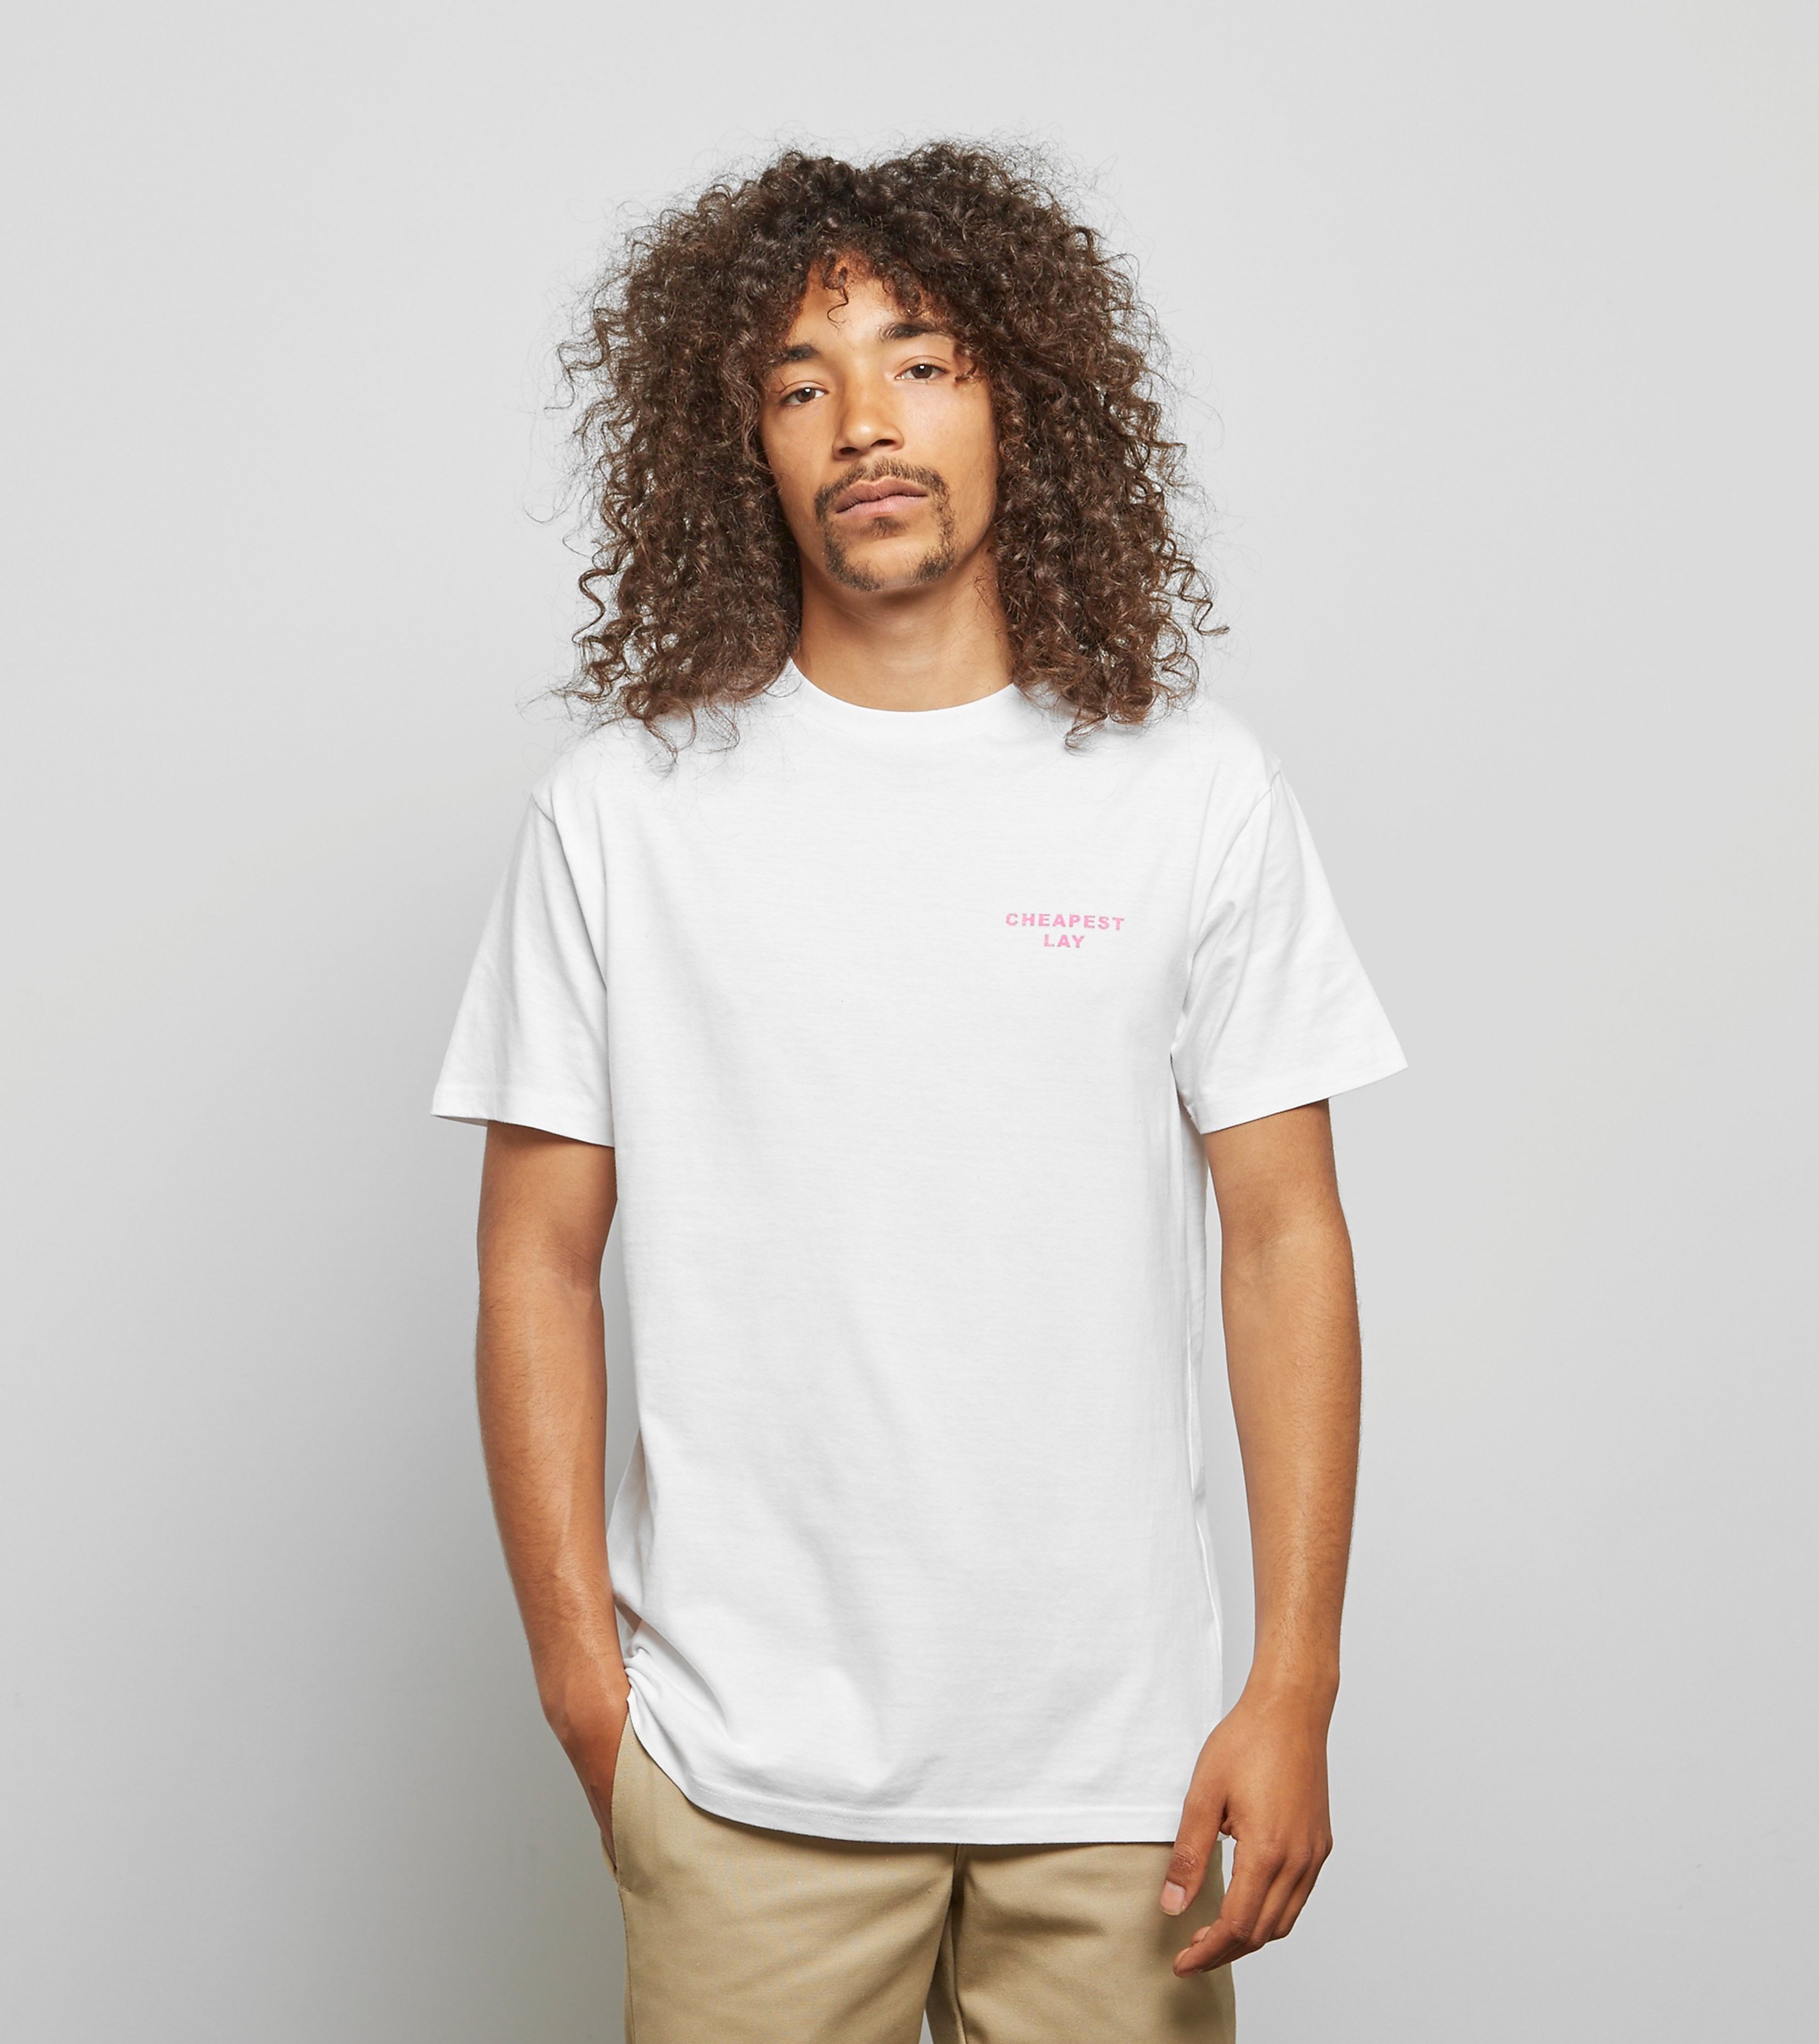 Good Worth & Co Cheapest Lay T-Shirt